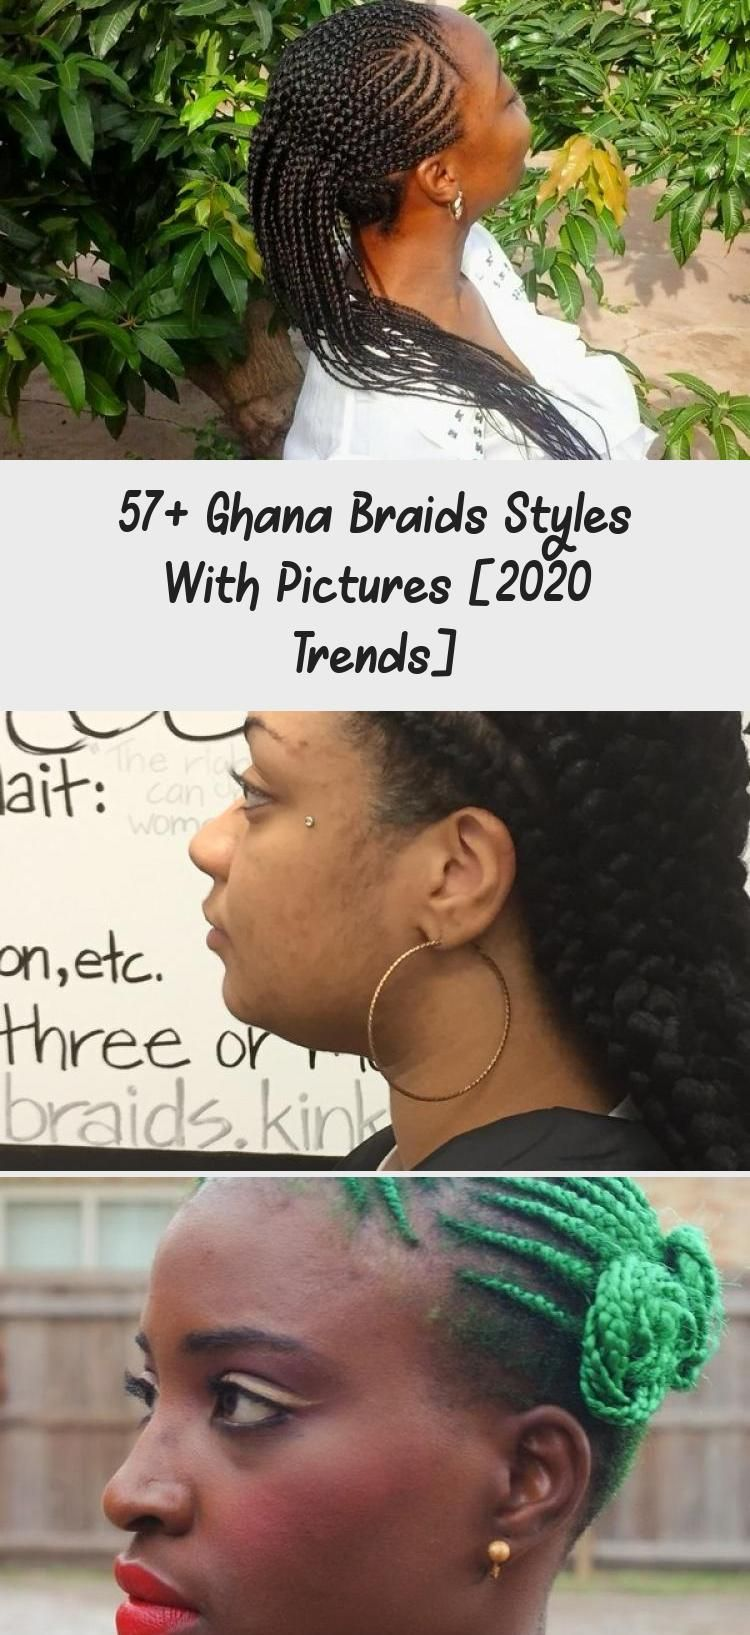 57+ Ghana Braids Styles with Pictures [2020 Trends] in